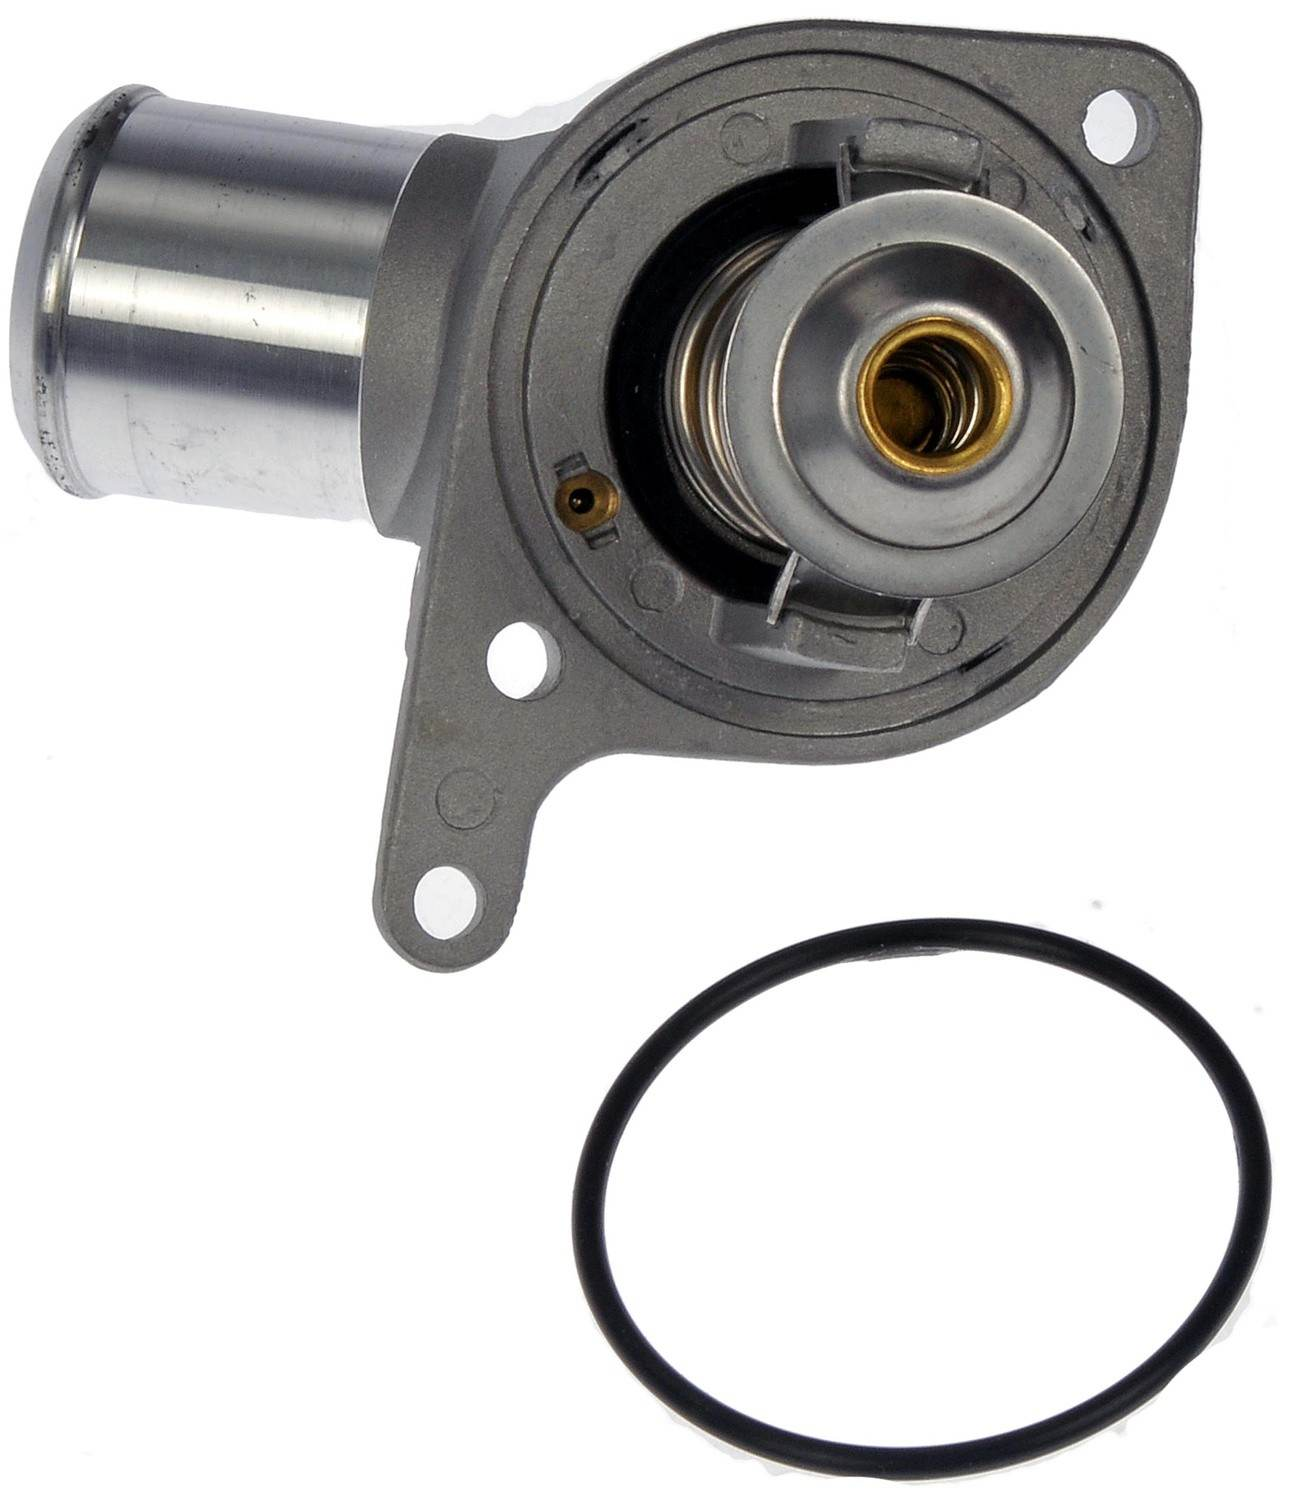 DORMAN OE SOLUTIONS - Engine Coolant Thermostat Housing Assembly - DRE 902-700